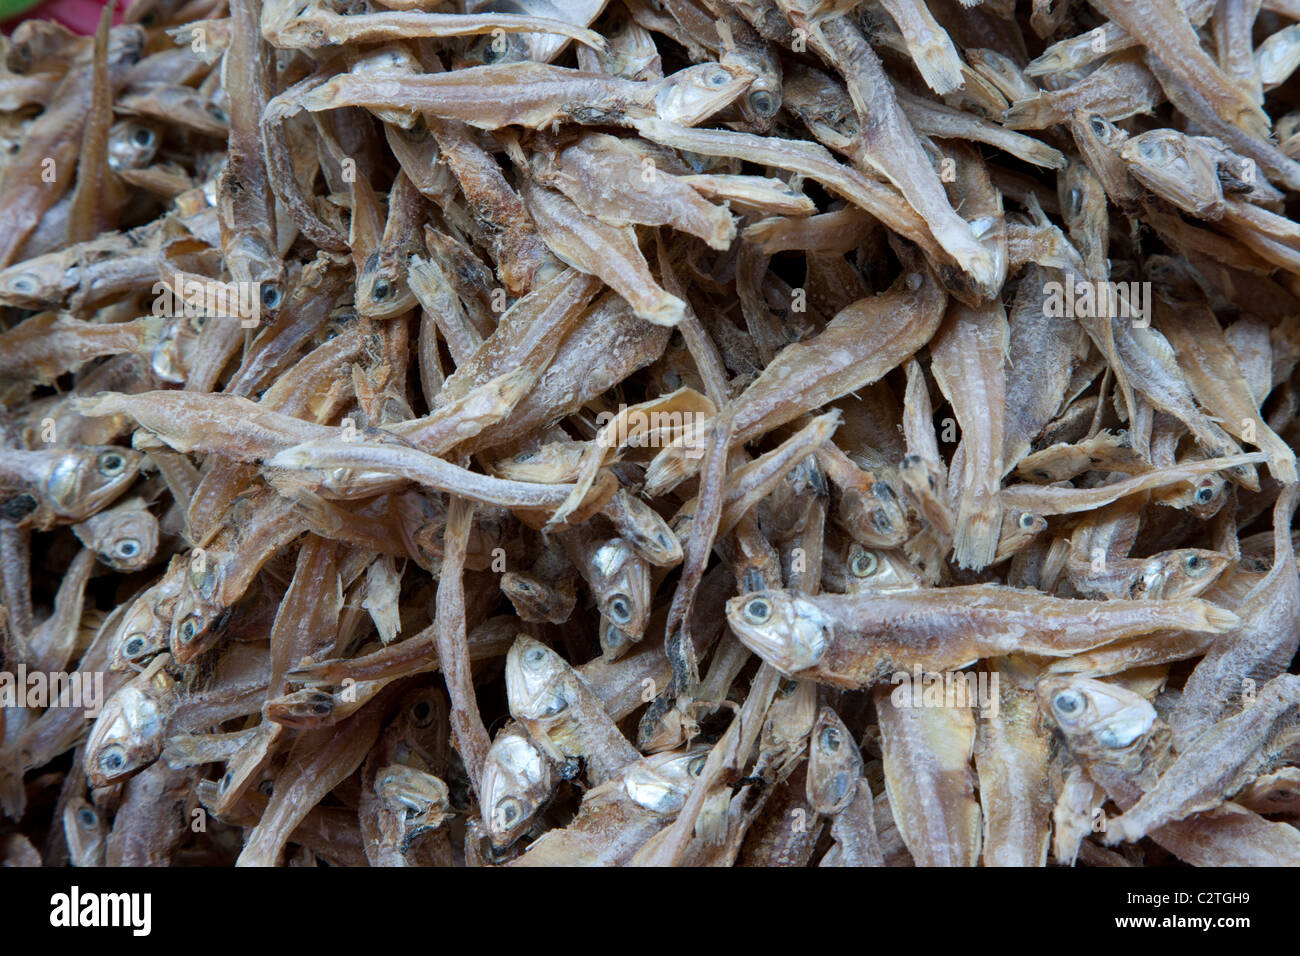 Salted Fish Stock Photos & Salted Fish Stock Images - Alamy